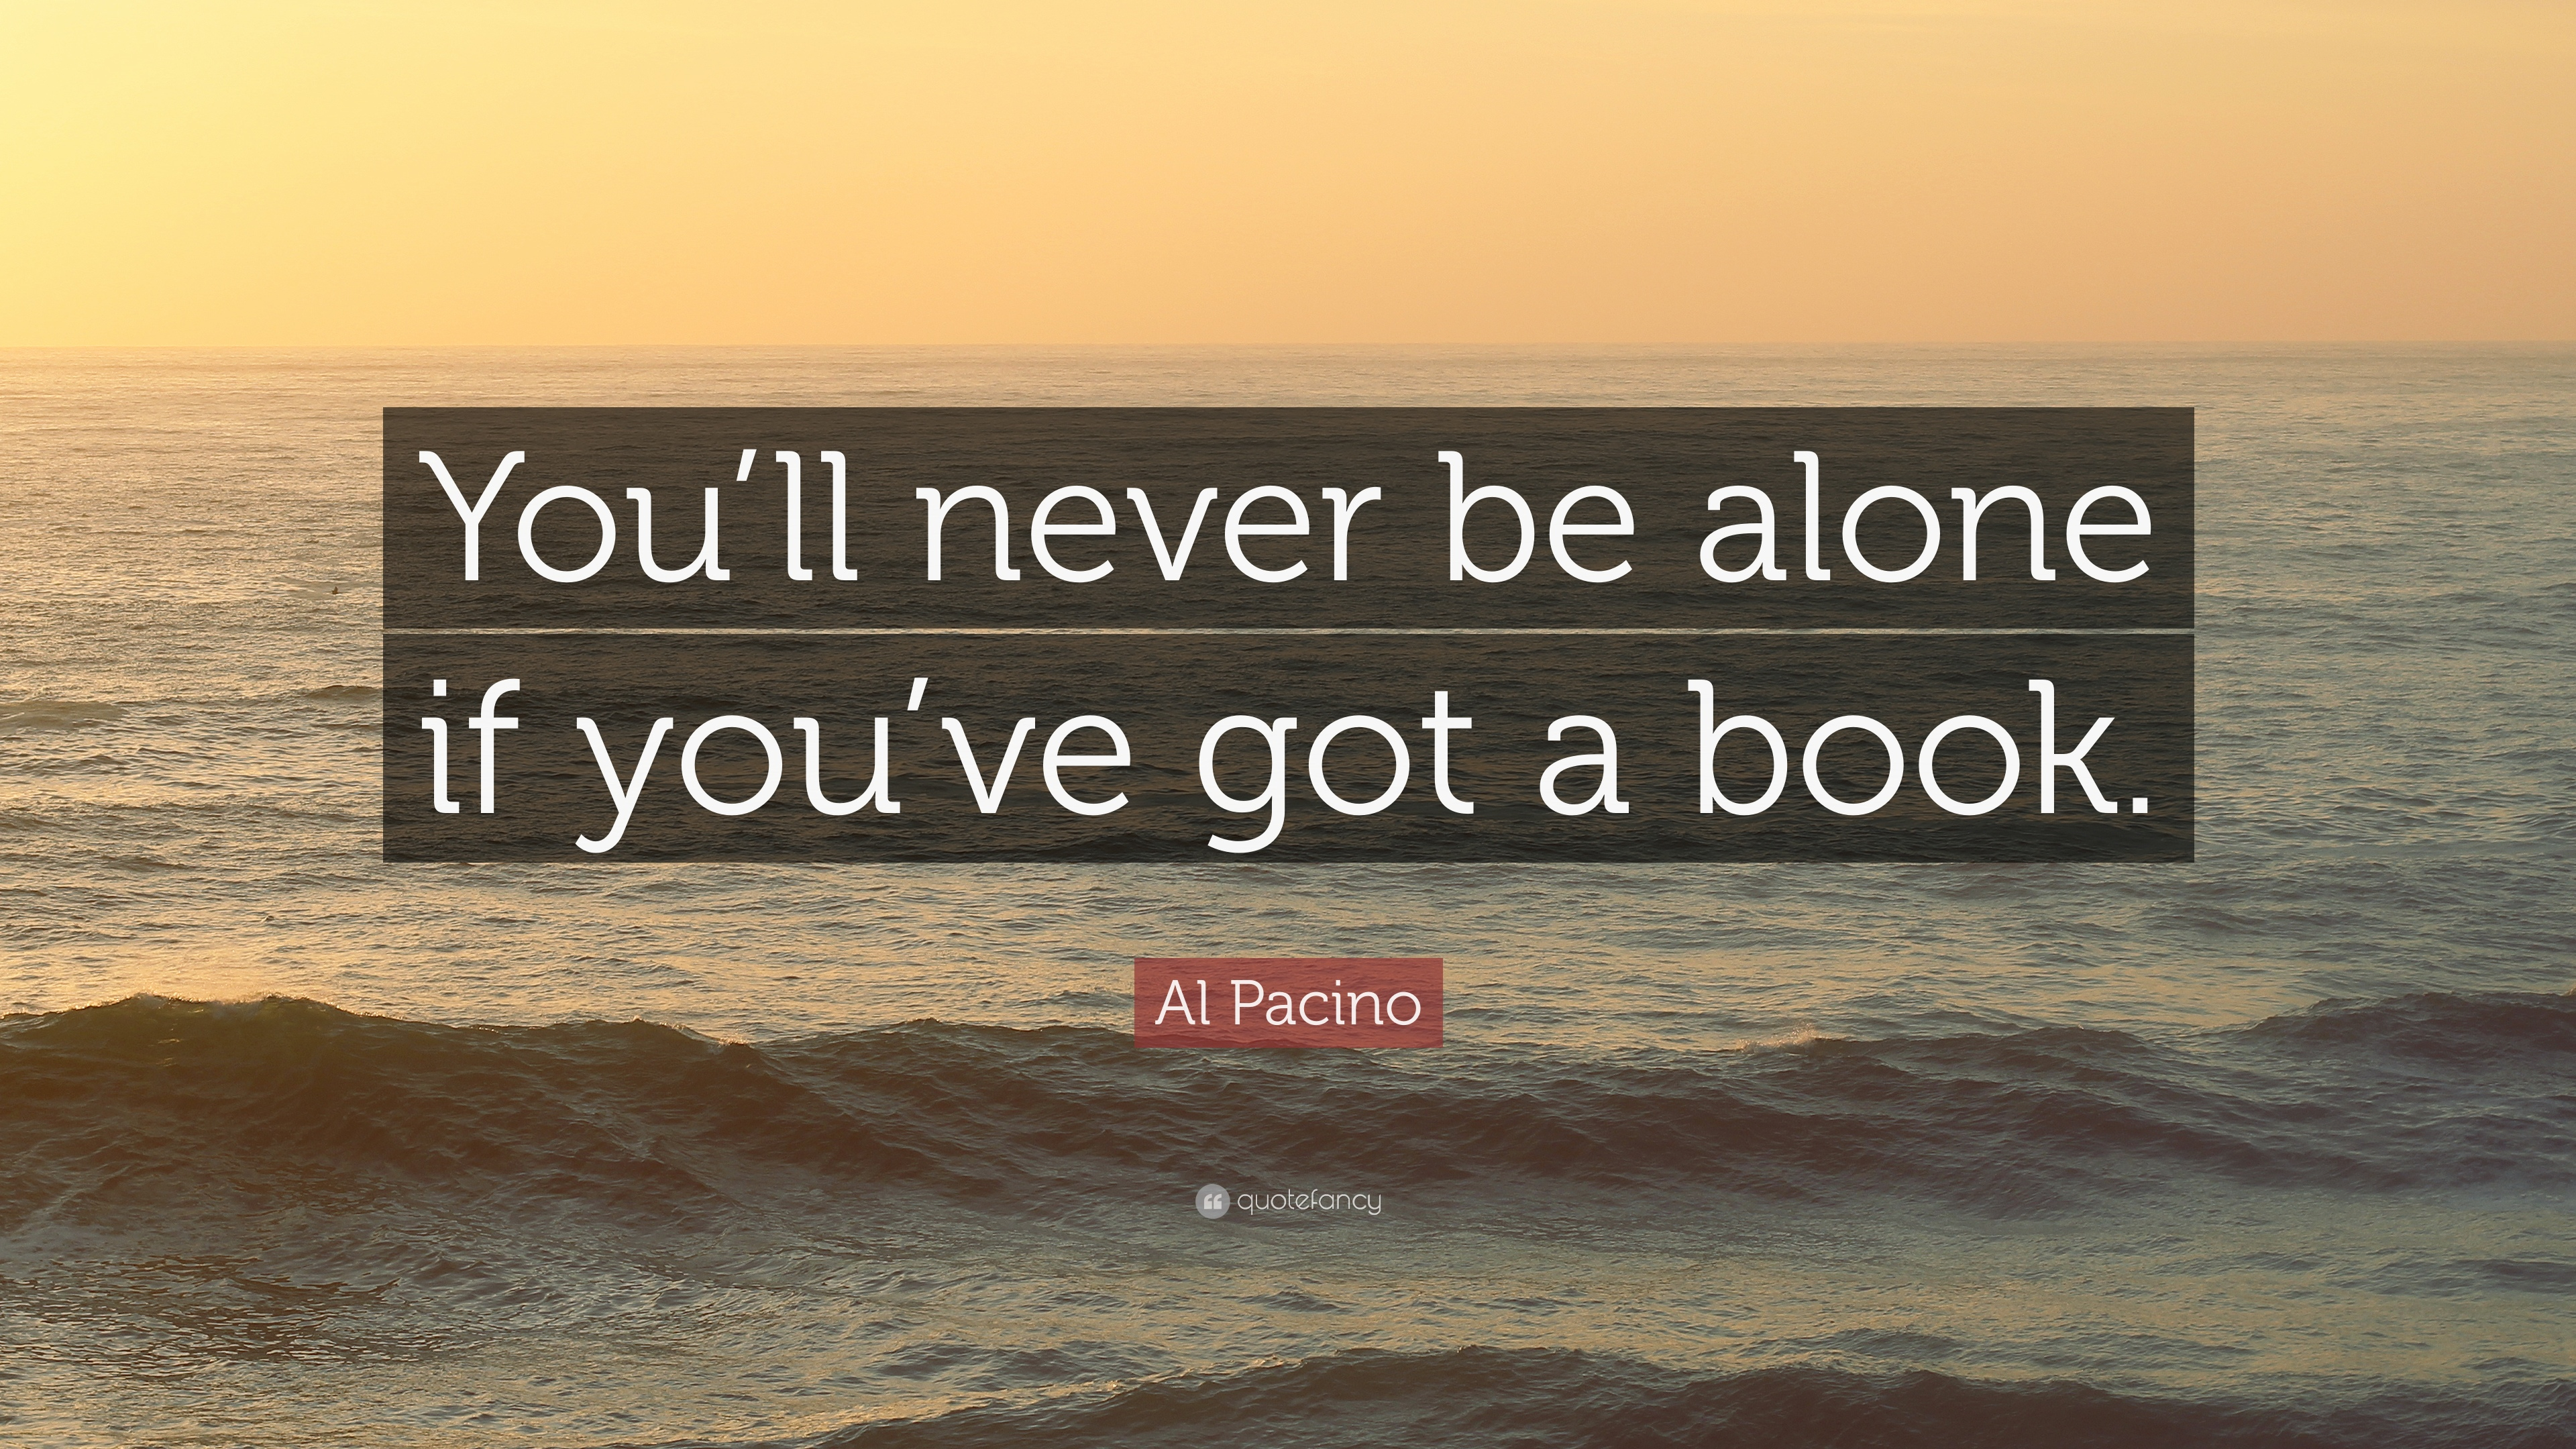 Al Pacino Quote You Ll Never Be Alone If You Ve Got A Book 10 Wallpapers Quotefancy